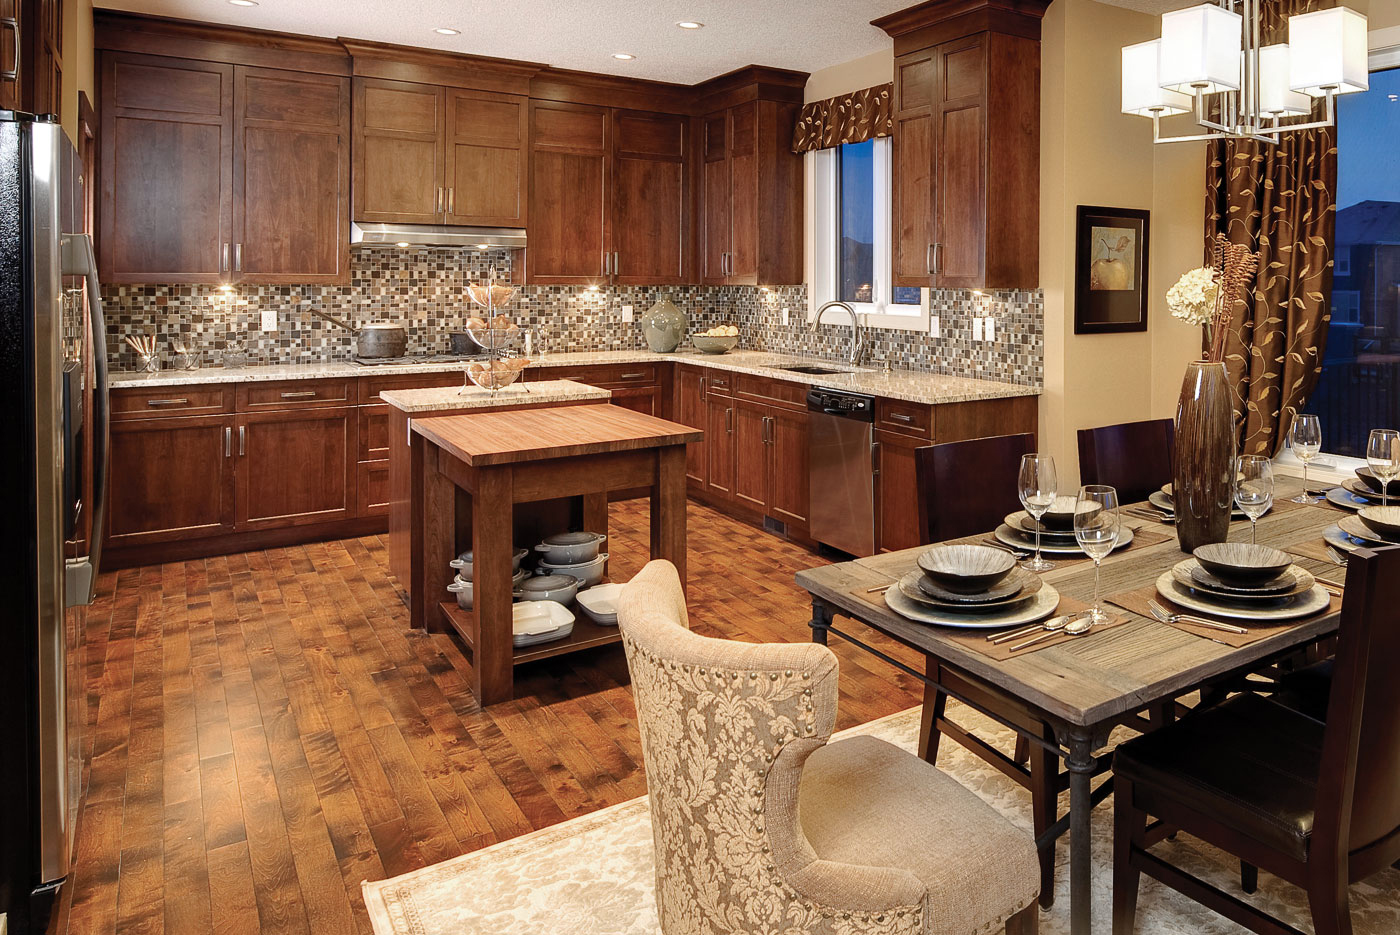 Contemporary kitchen with medium stained cabinets cupboards, stainless steel appliances, large island with butcher block top, light colored granite countertops, available at Superior Cabinets Saskatoon, Regina, Calgary, Edmonton.